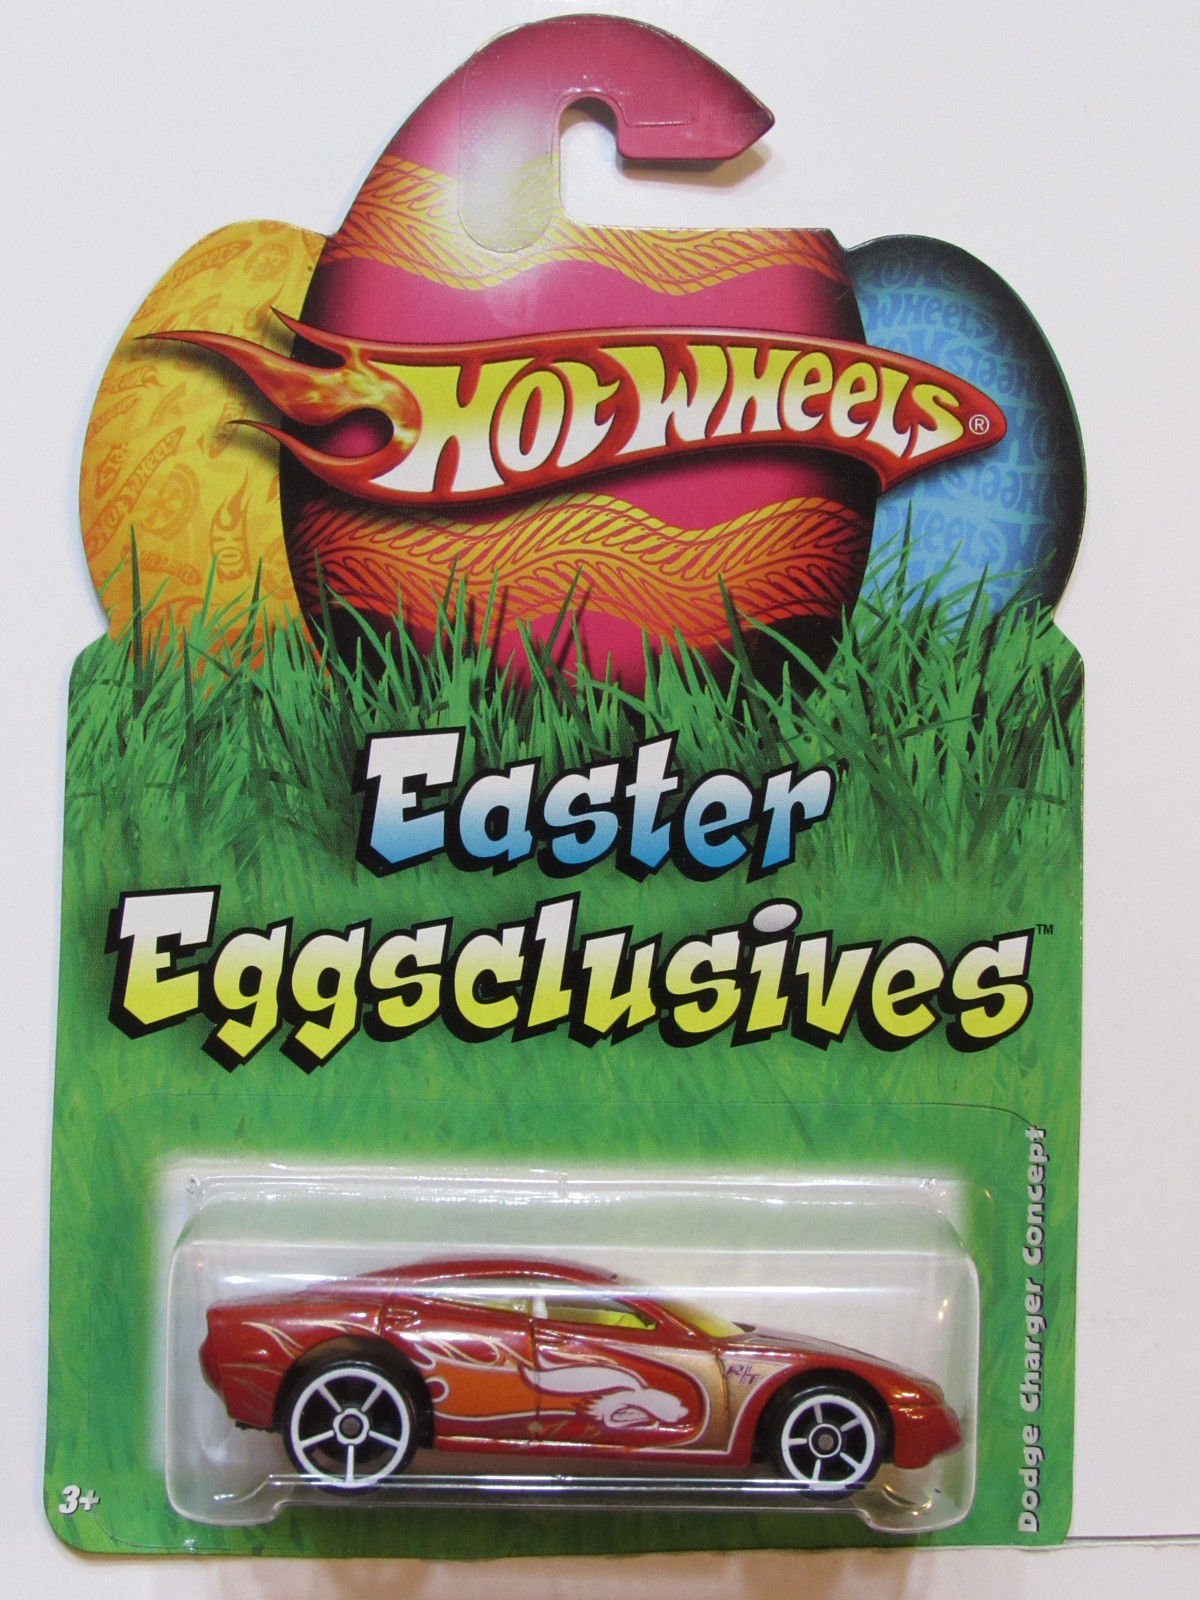 HOT WHEELS EASTER EGGSCLUSIVES DODGE CHARGER CONCEPT